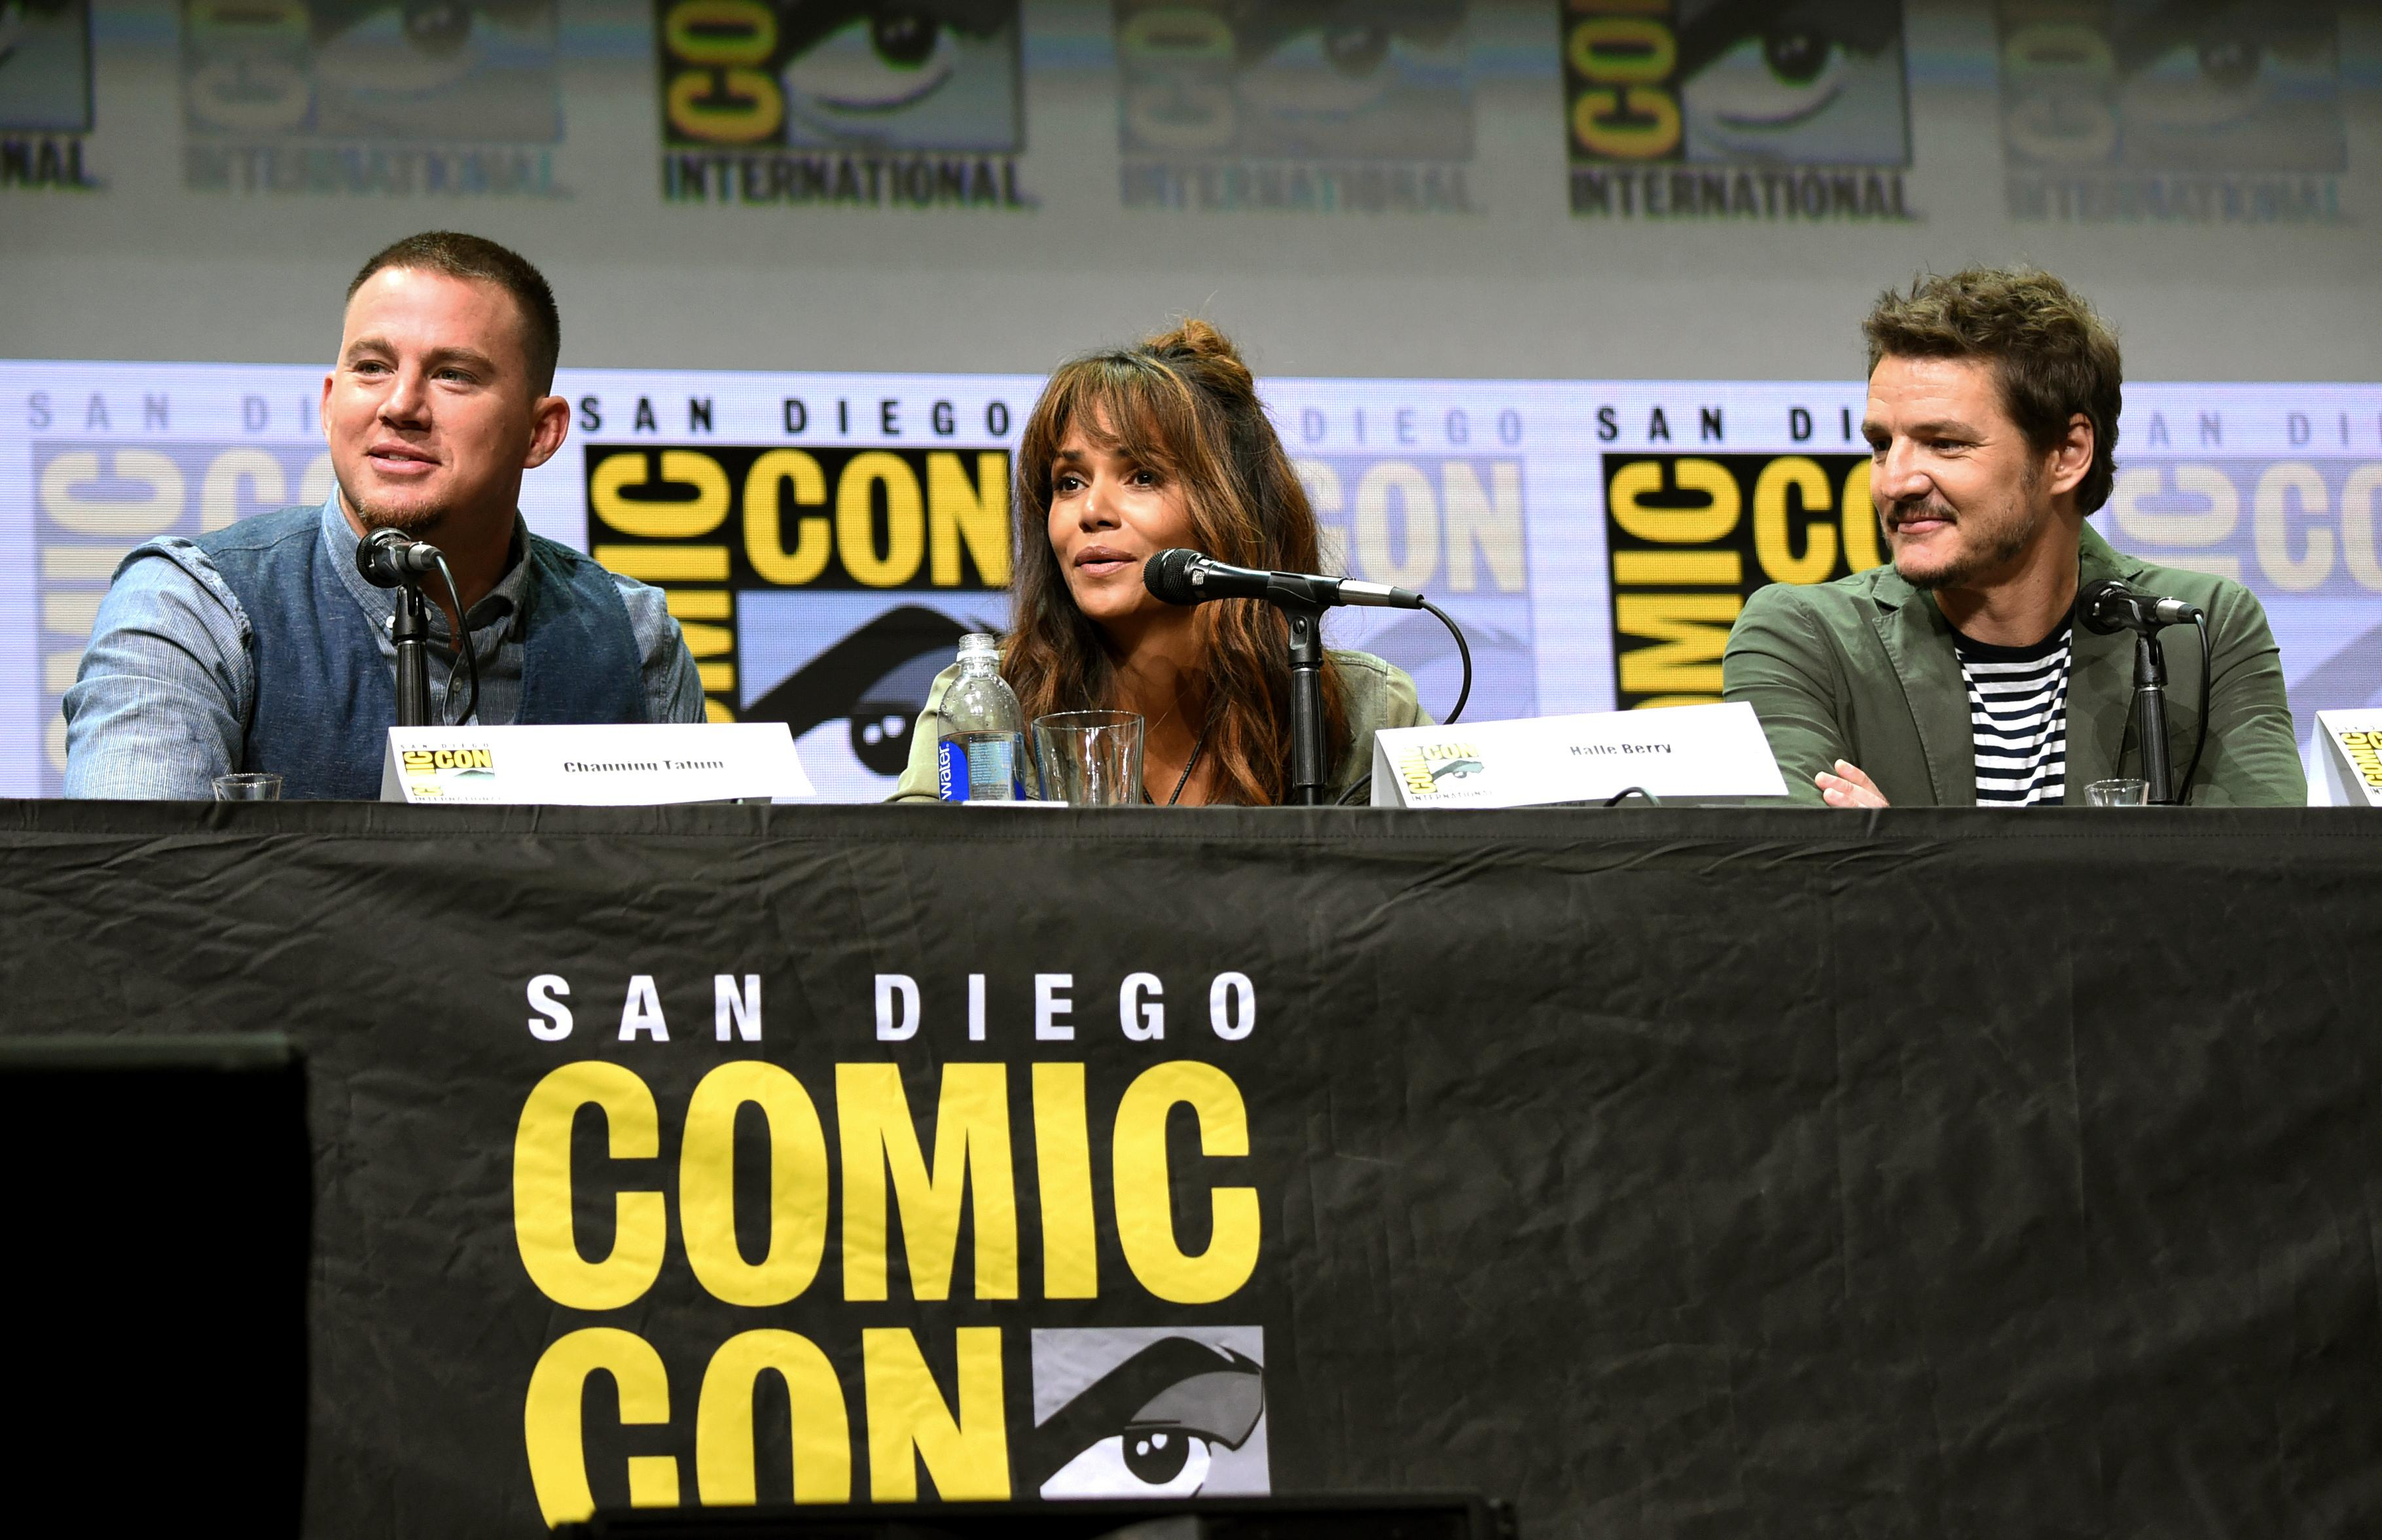 Channing Tatum, from left, Halle Berry, and Pedro Pascal attend the 20th Century Fox panel on day 1 of Comic-Con International on Thursday, July 20, 2017, in San Diego. (Photo by Richard Shotwell/Invision/AP)